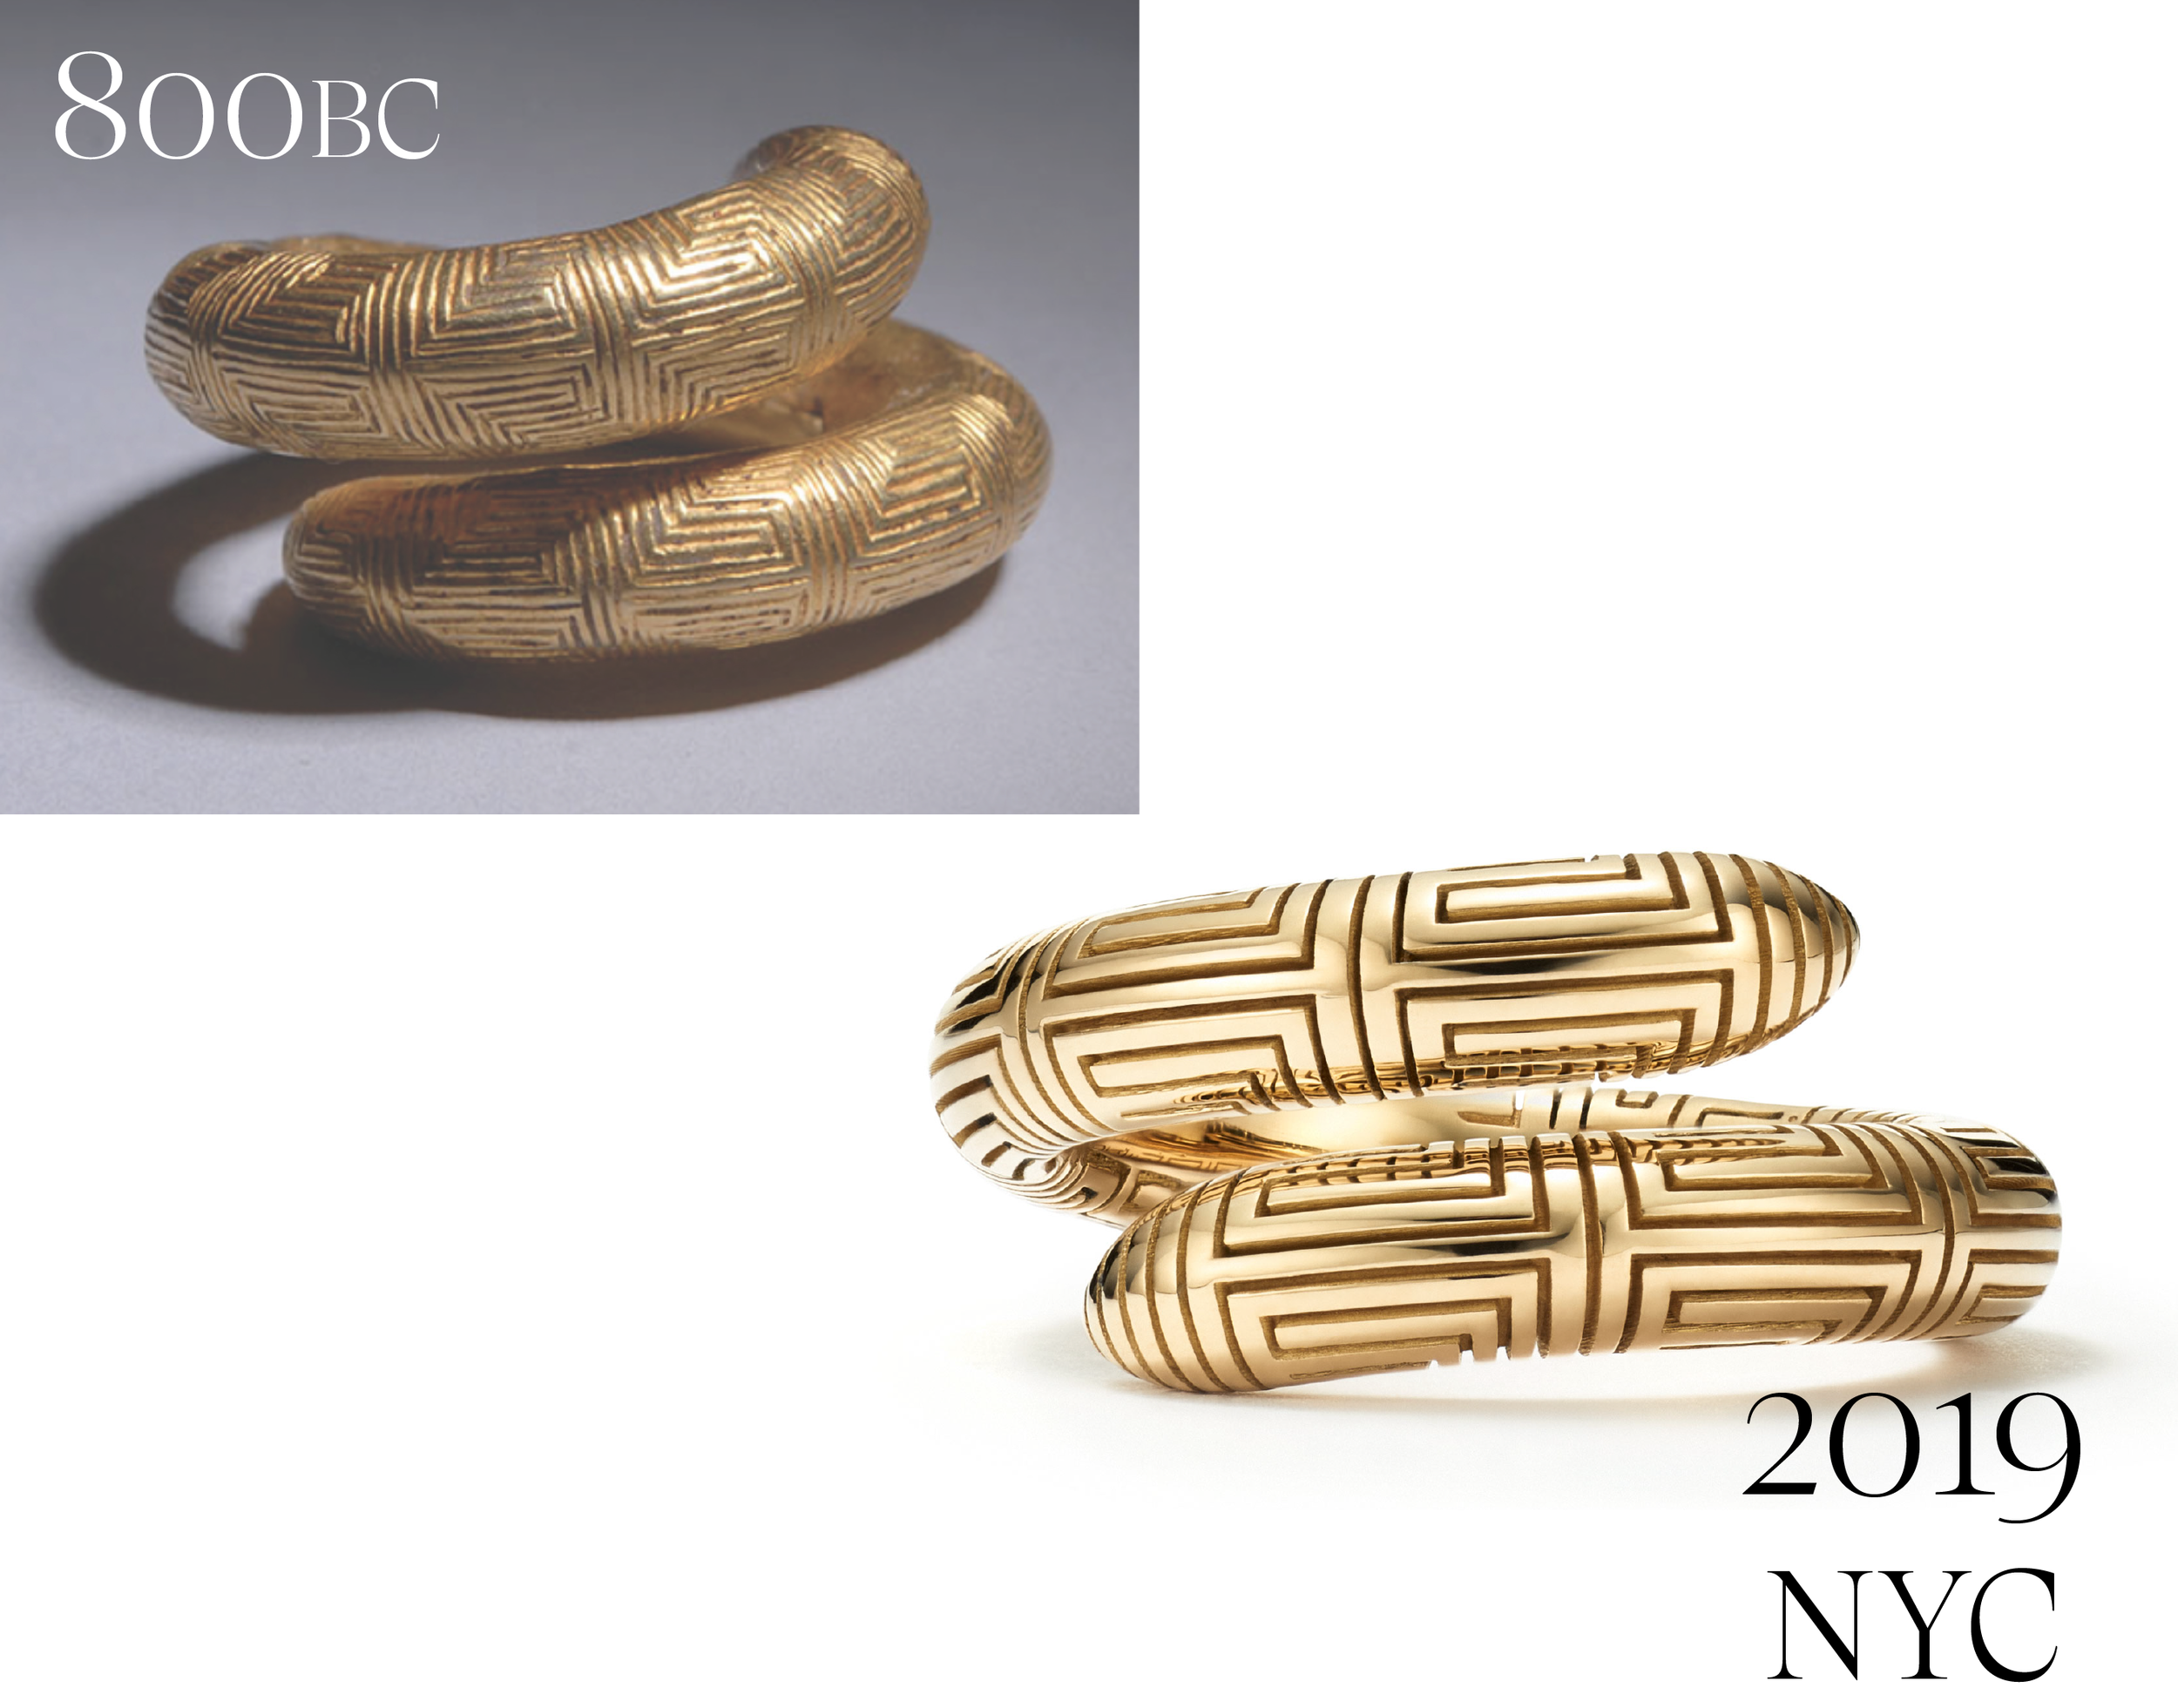 The 800BC ring was originally designed by an ancient artisan in Greece 2800 years ago. Today we handcraft it in 18kt Fairmined Ecological gold right here in NYC.